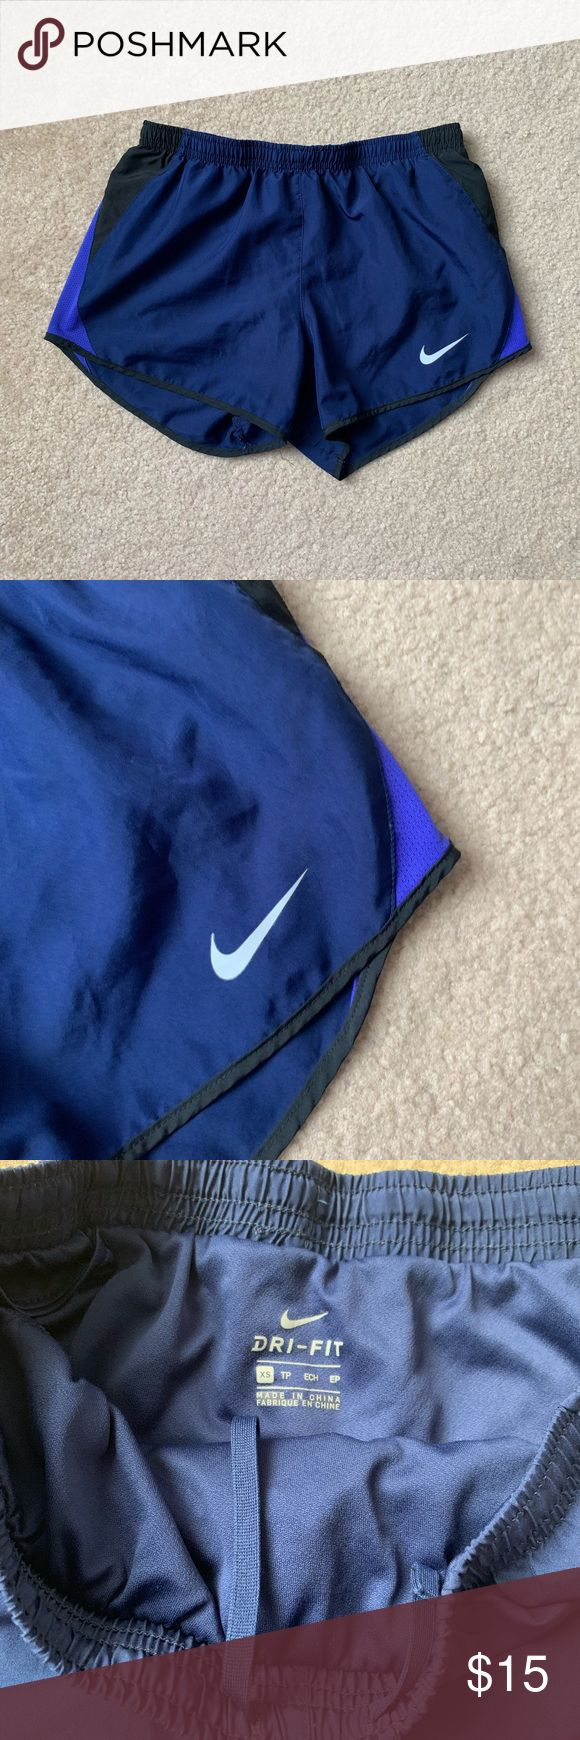 Blue and Black Basic Nike Running Shorts size- XS  follow us on instagram @shopmonowi for updates     tags- cute, aesthetic, vintage, thrifted, y2k, b...